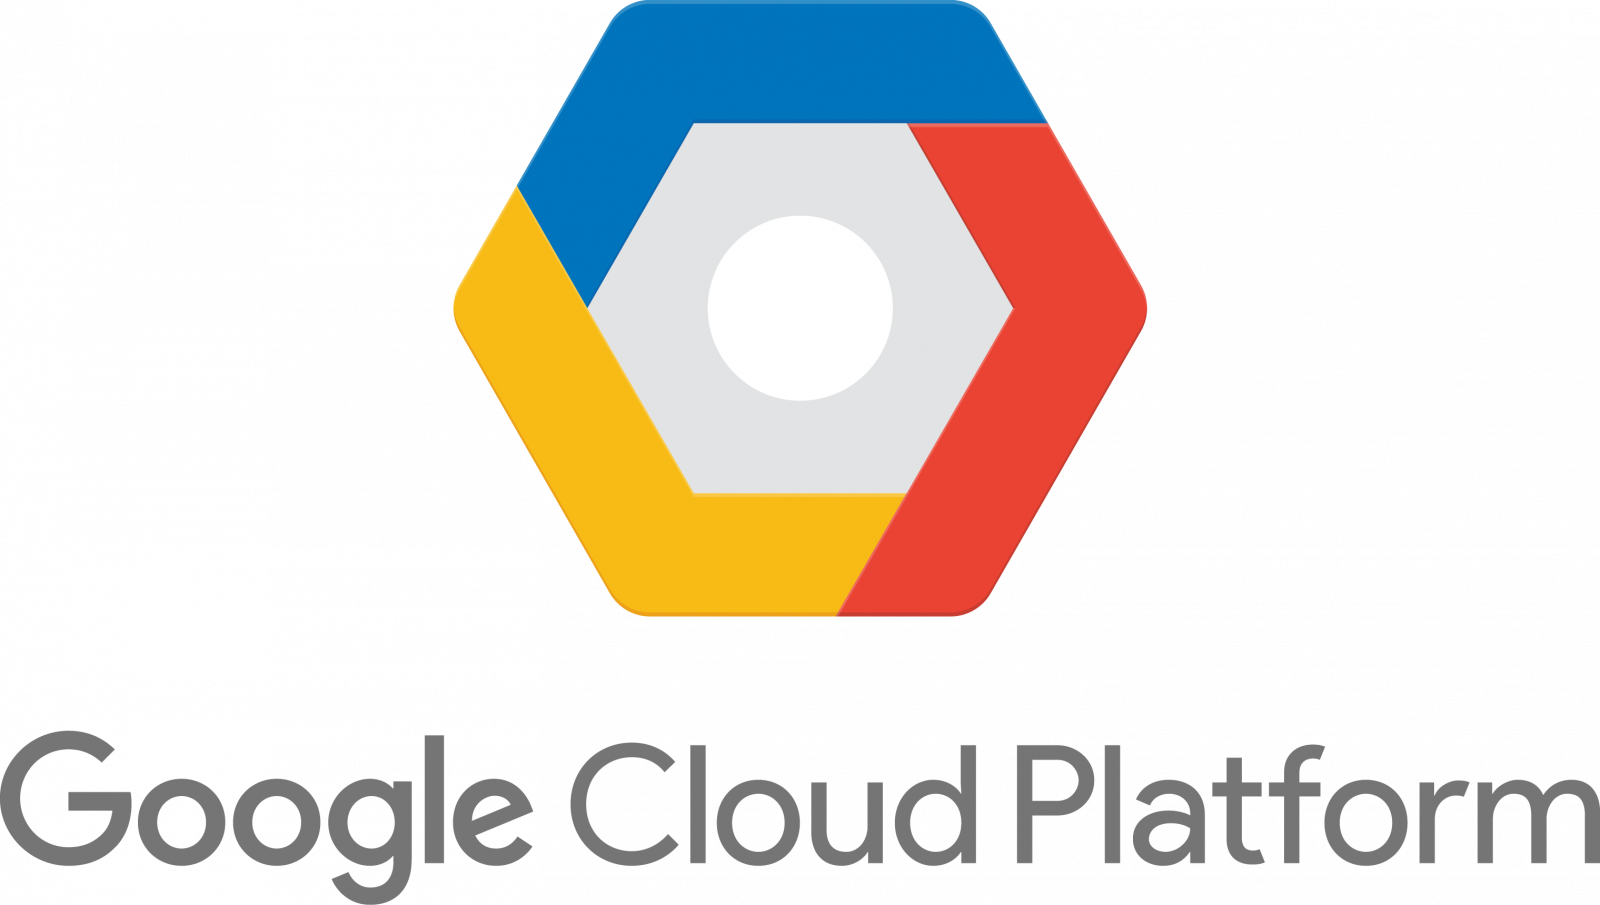 BlockApps Partners With Google Cloud Platform For Blockchain Solutions